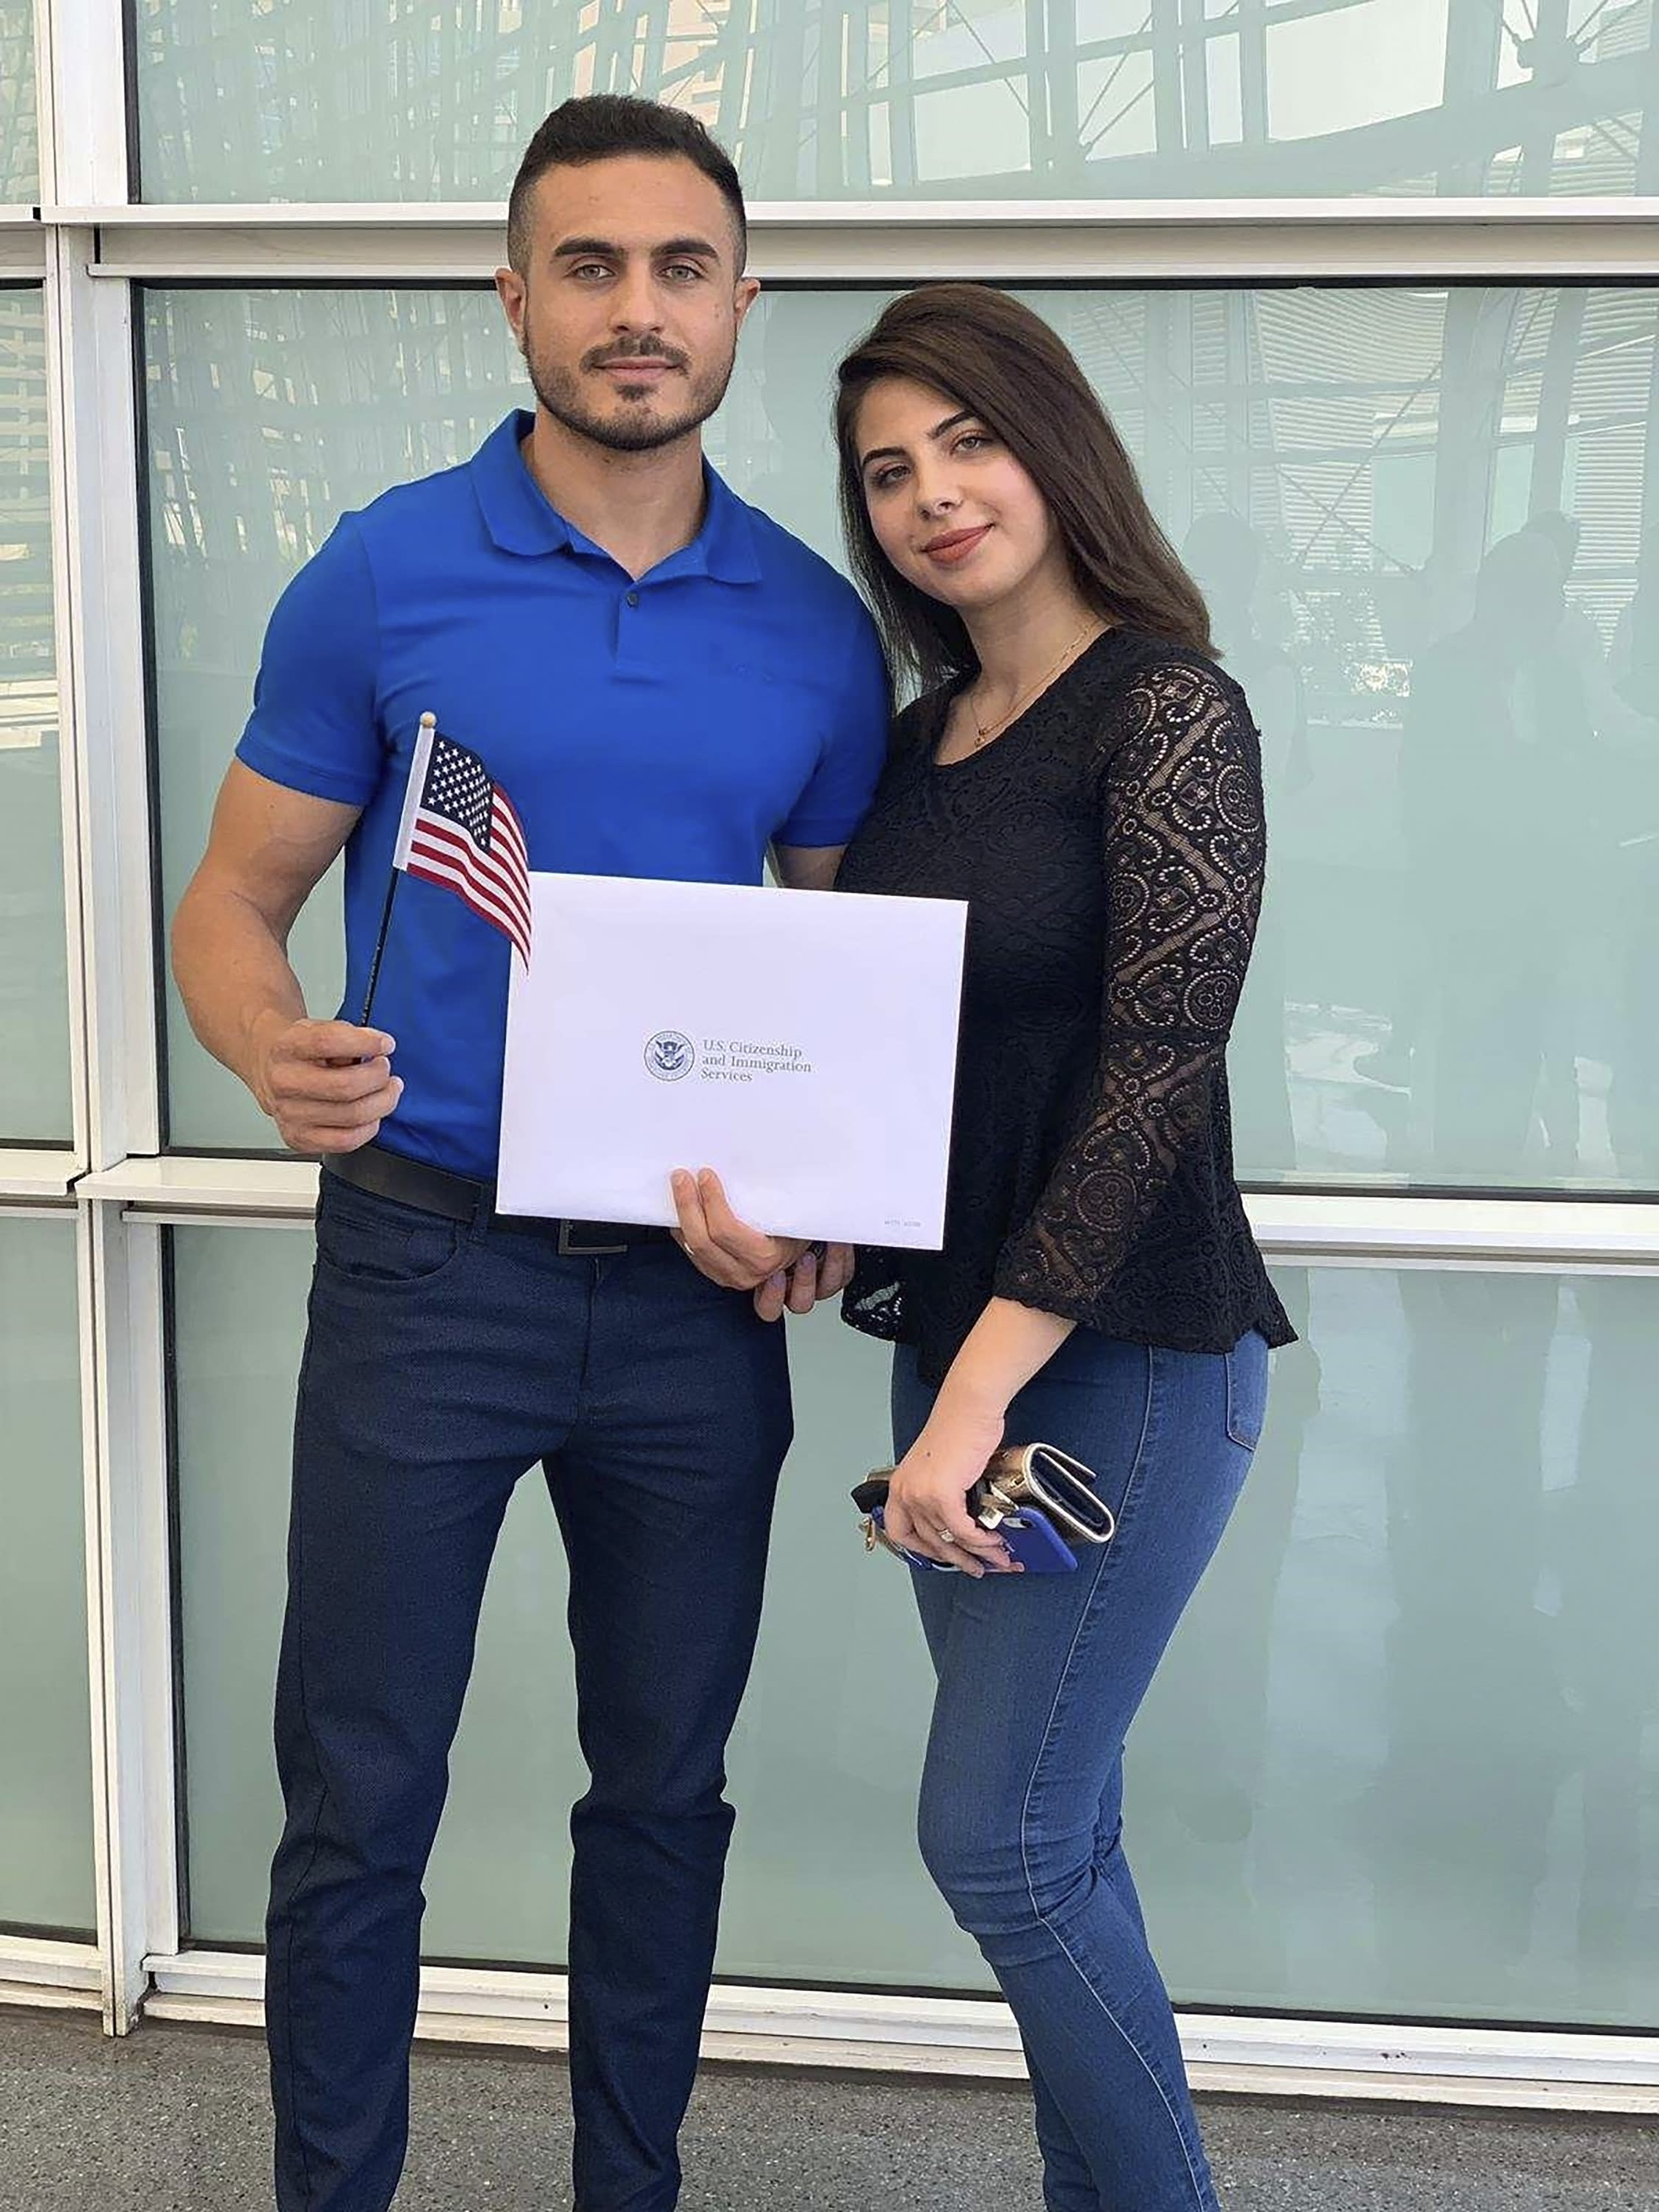 """In this September 2019, photo provided by Jad """"Jay"""" Jawad, Jawad, left, who came to the U.S. as a refugee from war-torn Iraq, poses at his naturalization ceremony in Phoenix with his wife, Nagham Rabeea, right. Jawad's parents and siblings are also settled in Arizona. He said that during presidential elections in his native country, Saddam Hussein was the only candidate on the ballot and the only real option was """"yes,"""" because a """"no"""" vote could get you jailed or worse. Now, he said he is looking to voting freely in his first U.S. presidential election this fall. (Jad """"Jay"""" Jawad via AP)"""